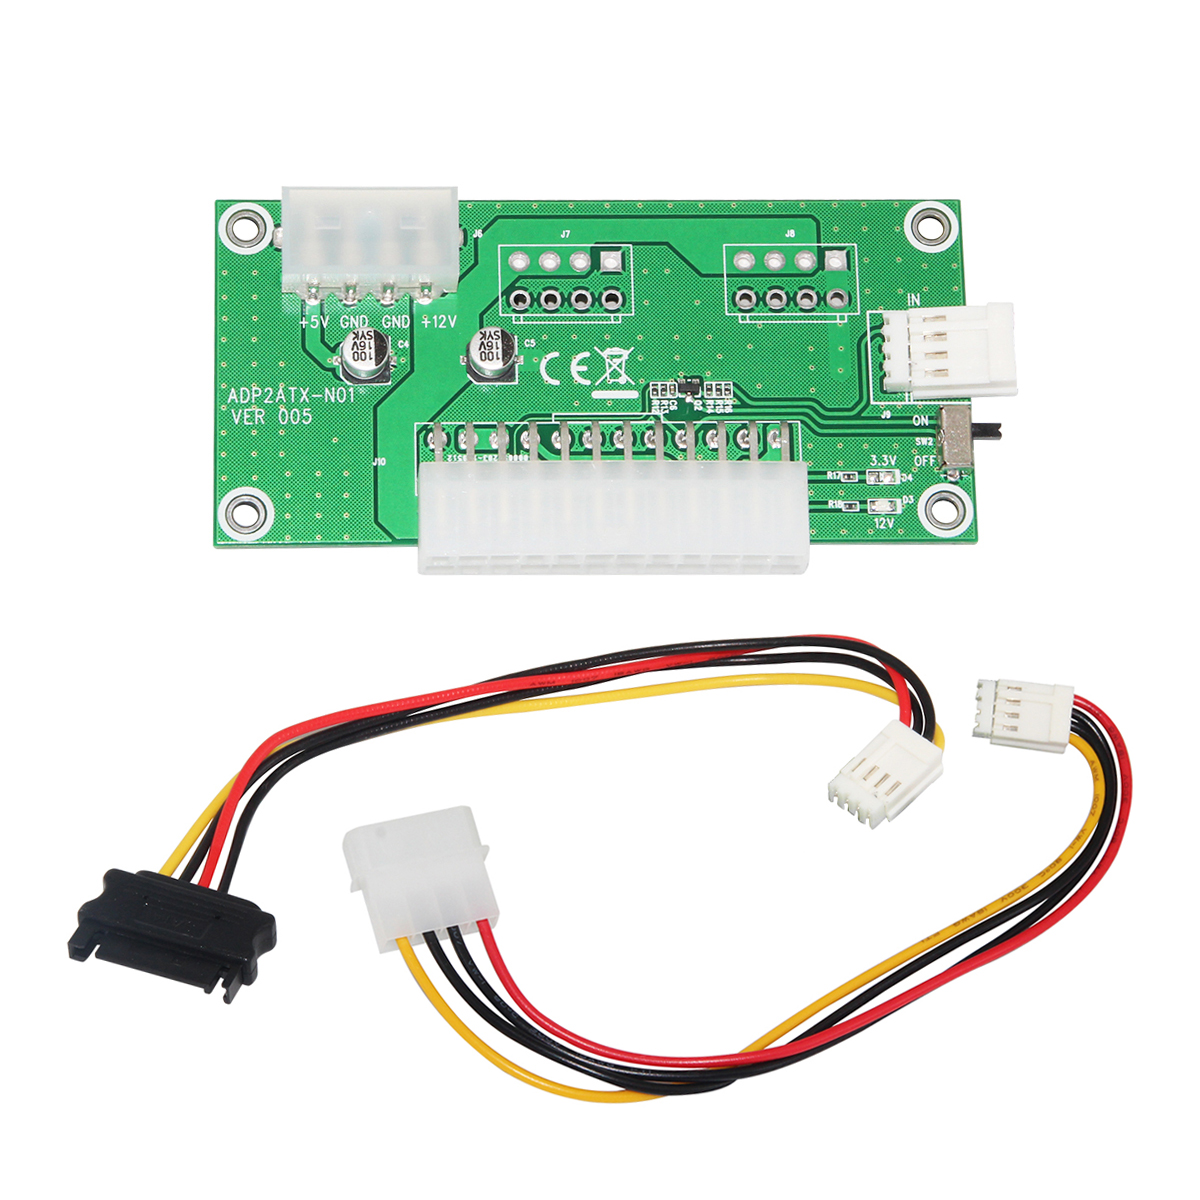 все цены на PC Desktop ATX 24-Pin Dual PSU Power Synchronous Start Extender 4pin + sata Detection Cable for Bitcoin Mining Expanded Ded онлайн